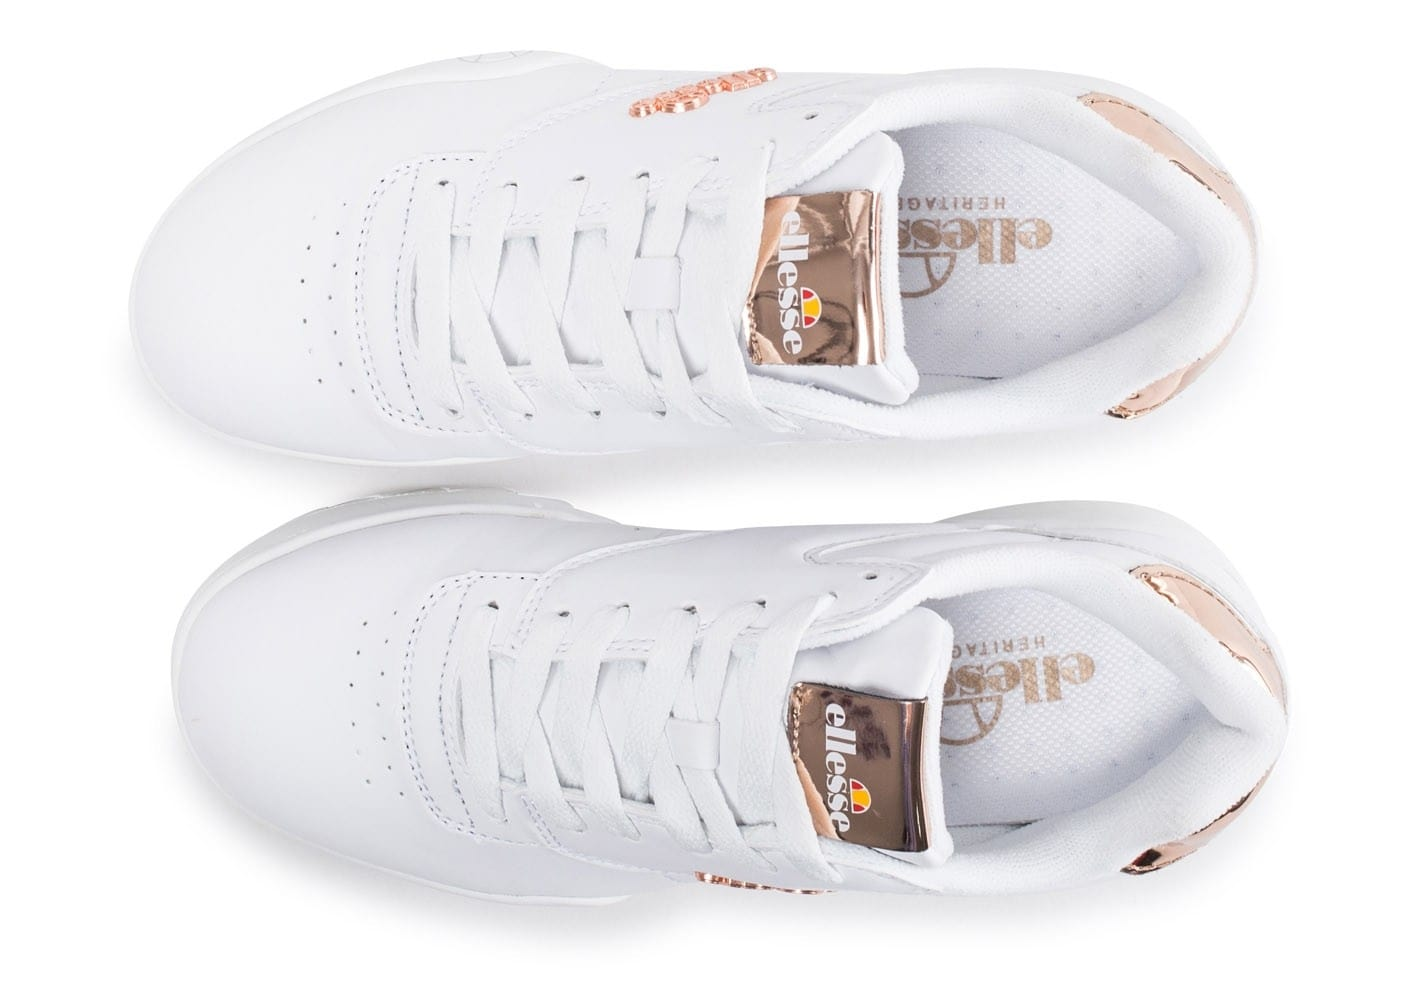 Full White Plativo Low Femme Baskets Chaussures Ellesse Chausport Nvmn08w